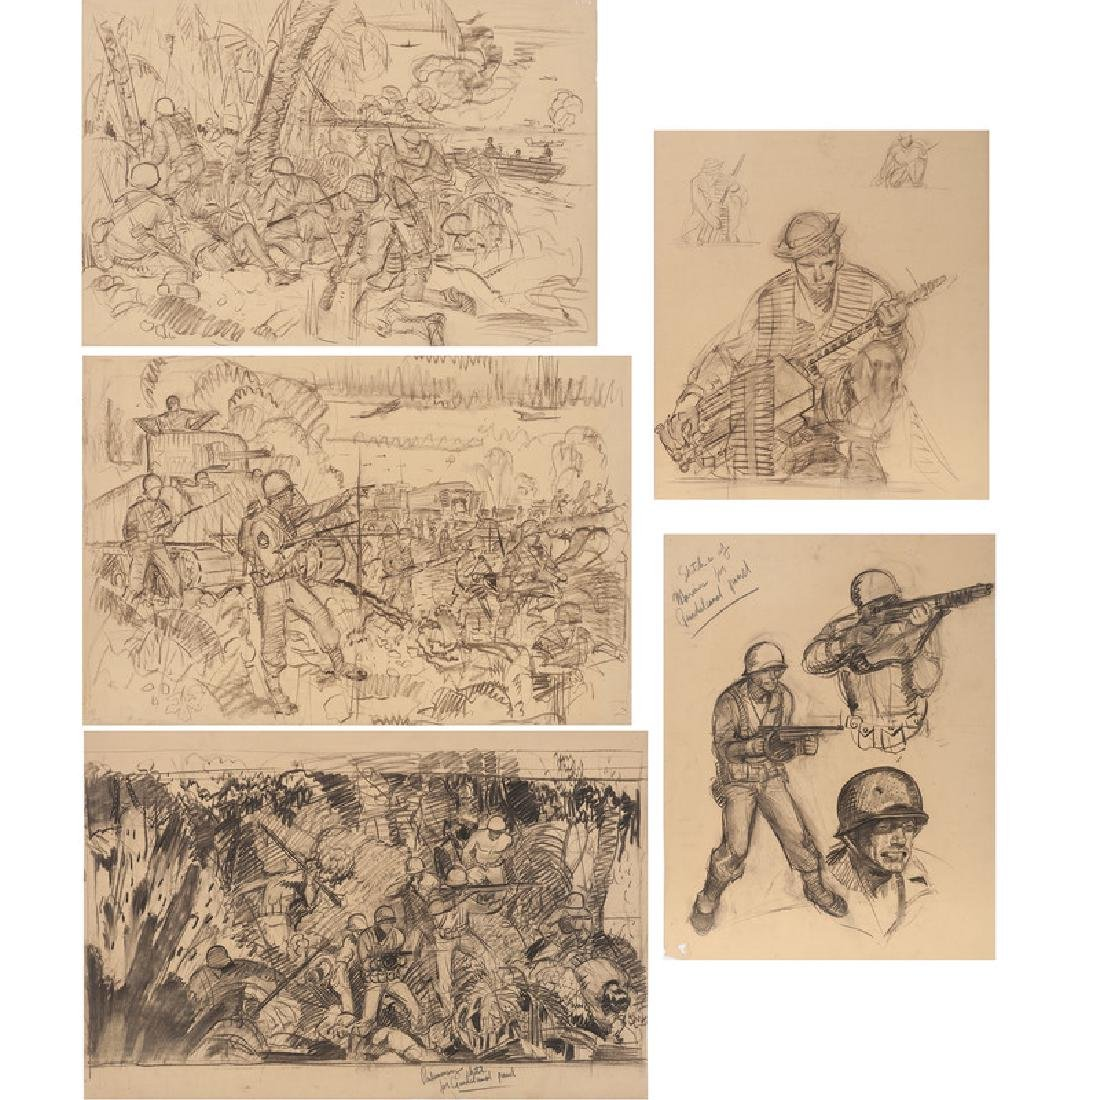 Sketches for the Guadalcanal Campaign Mural at